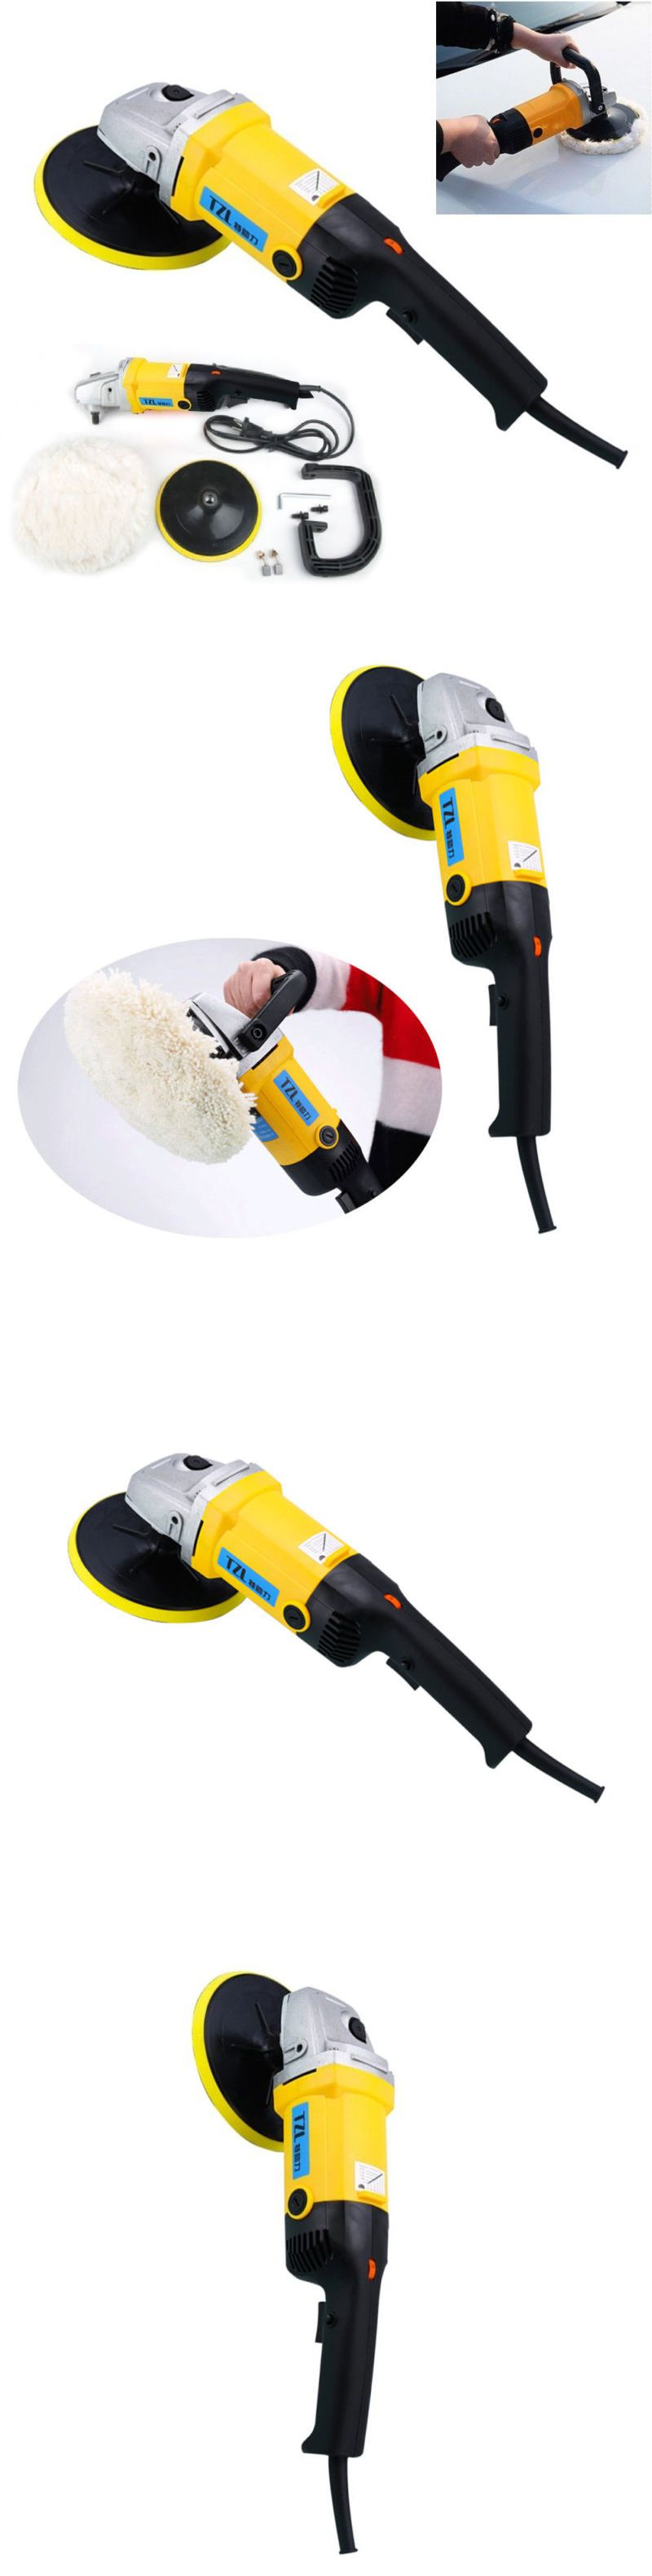 Buffers and Polishers 42266 7 Variable Speed DualAction